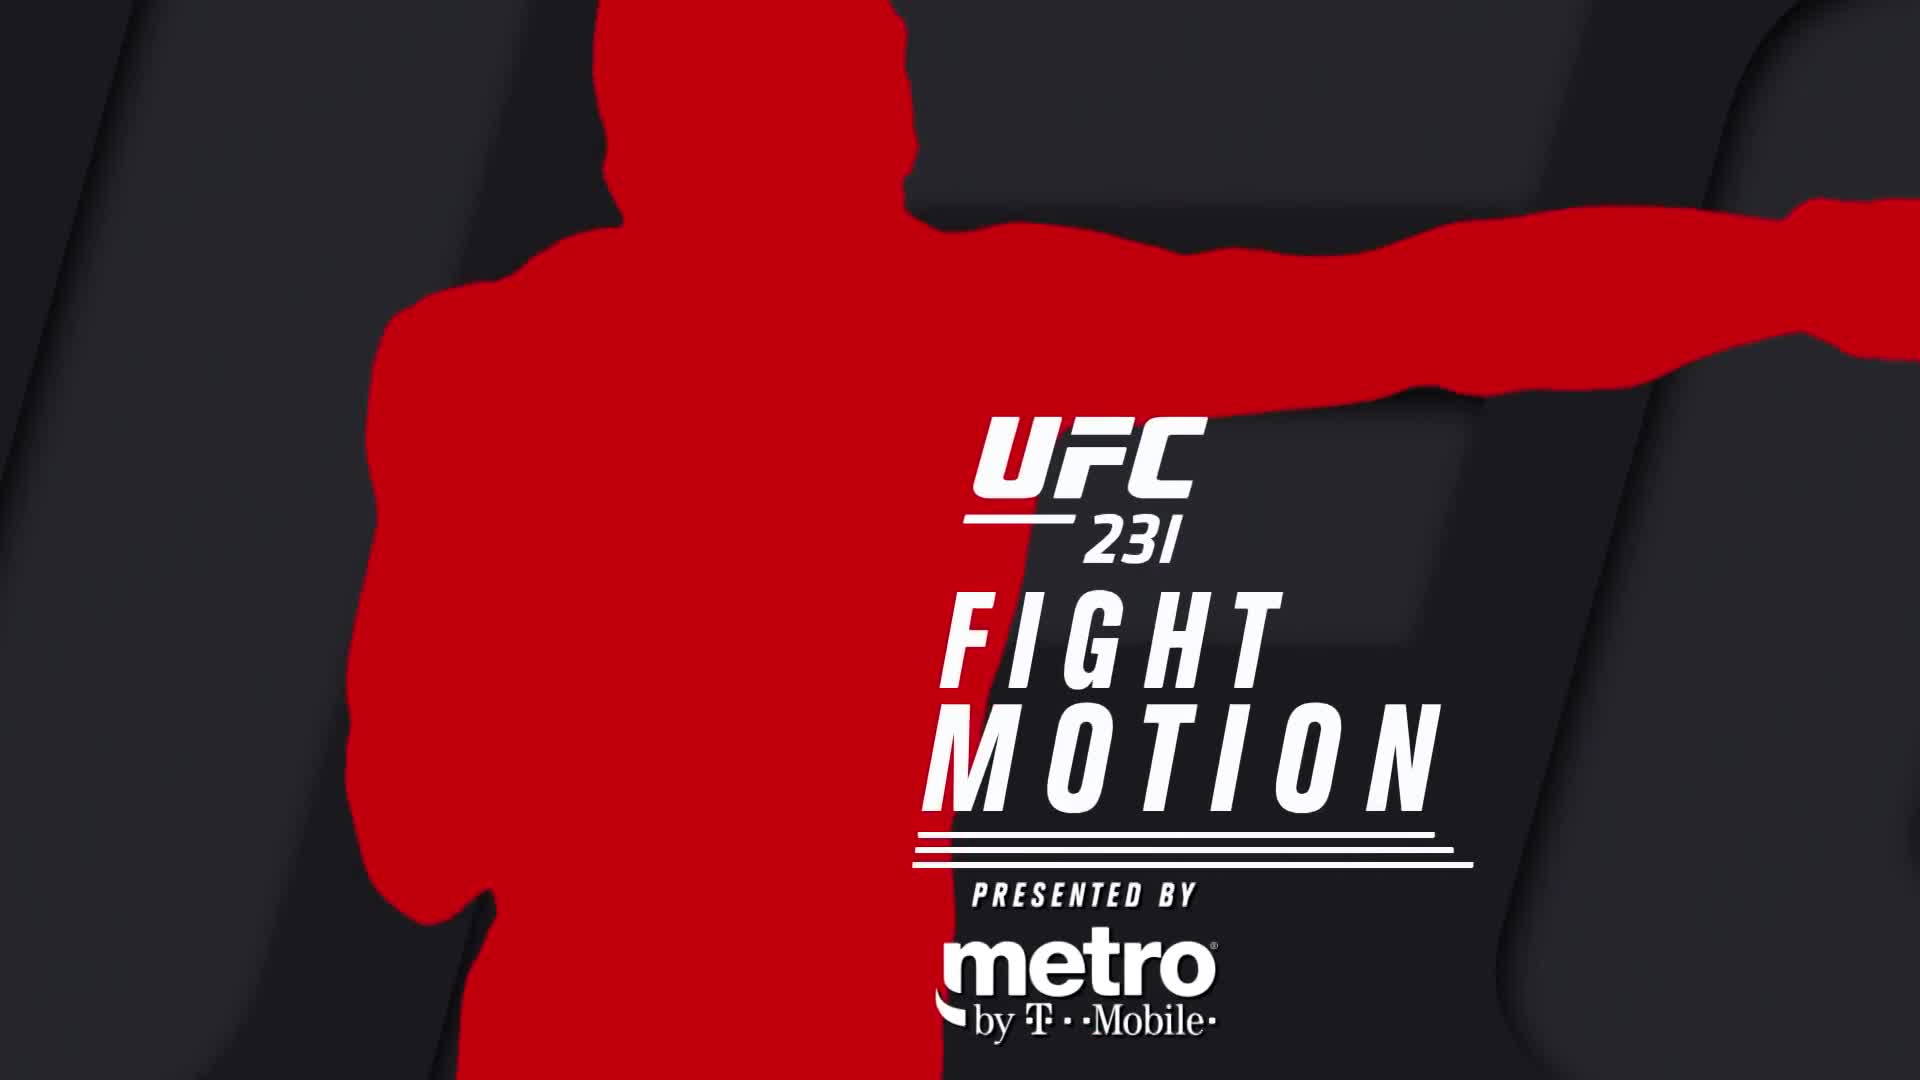 231, brian, fight, highlights, holloway, max, motion, ortega, slow, ufc, UFC 231: Fight Motion GIFs